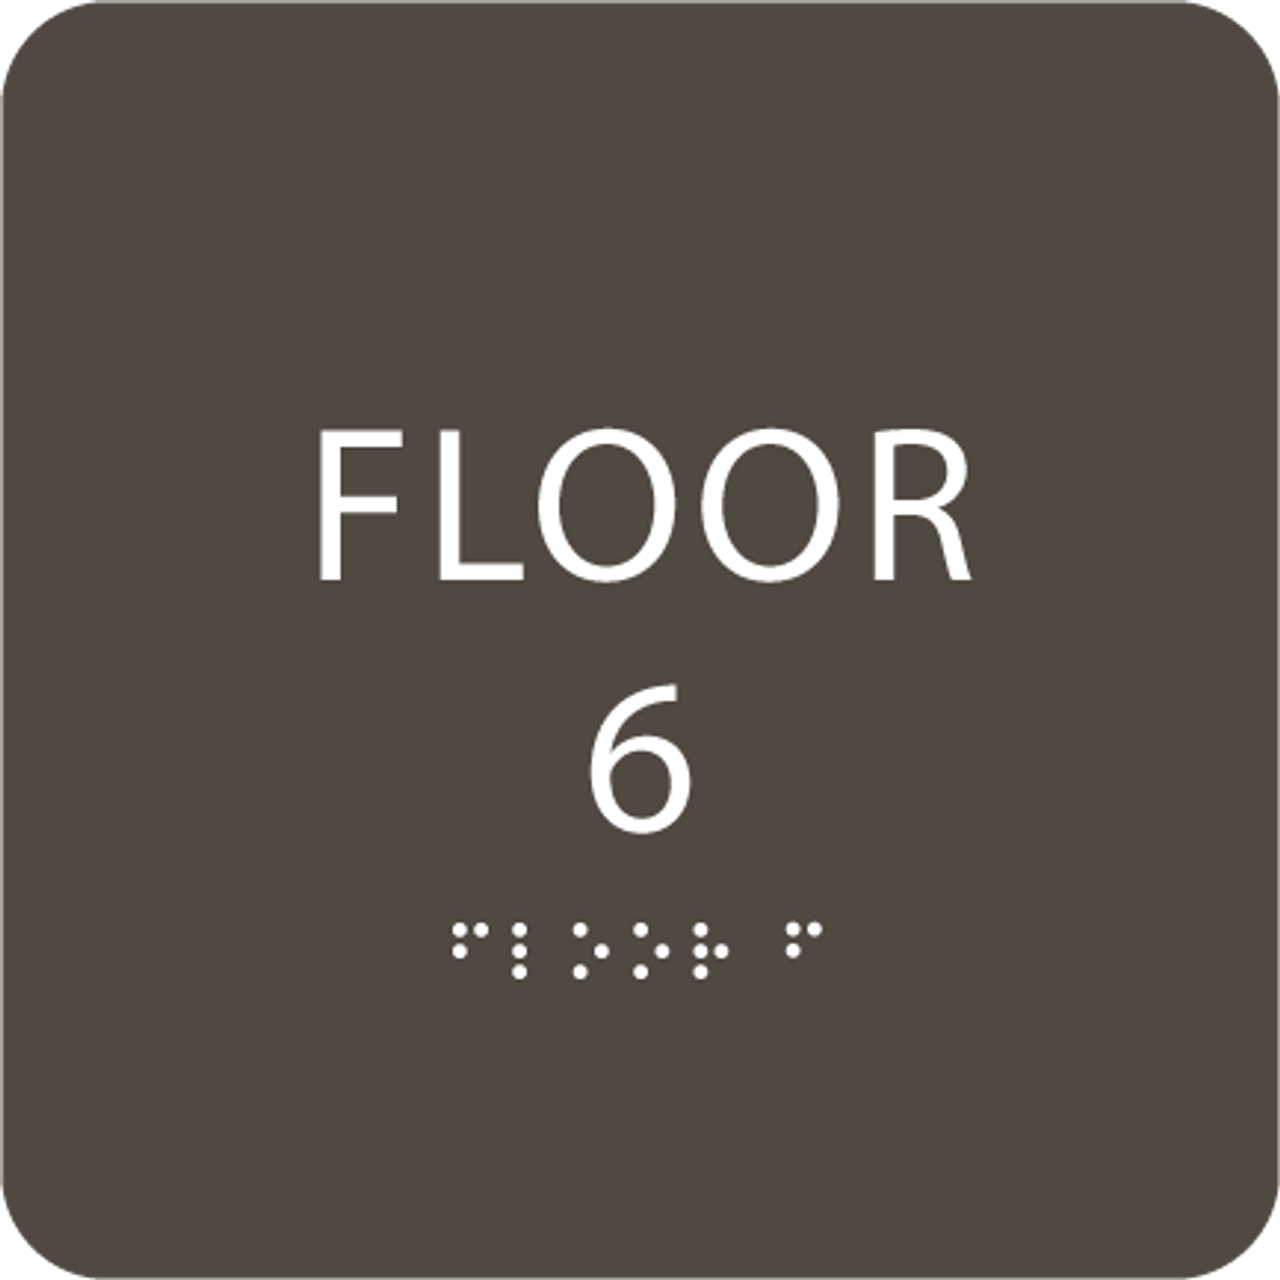 Olive Floor 6 Level Identification ADA Sign